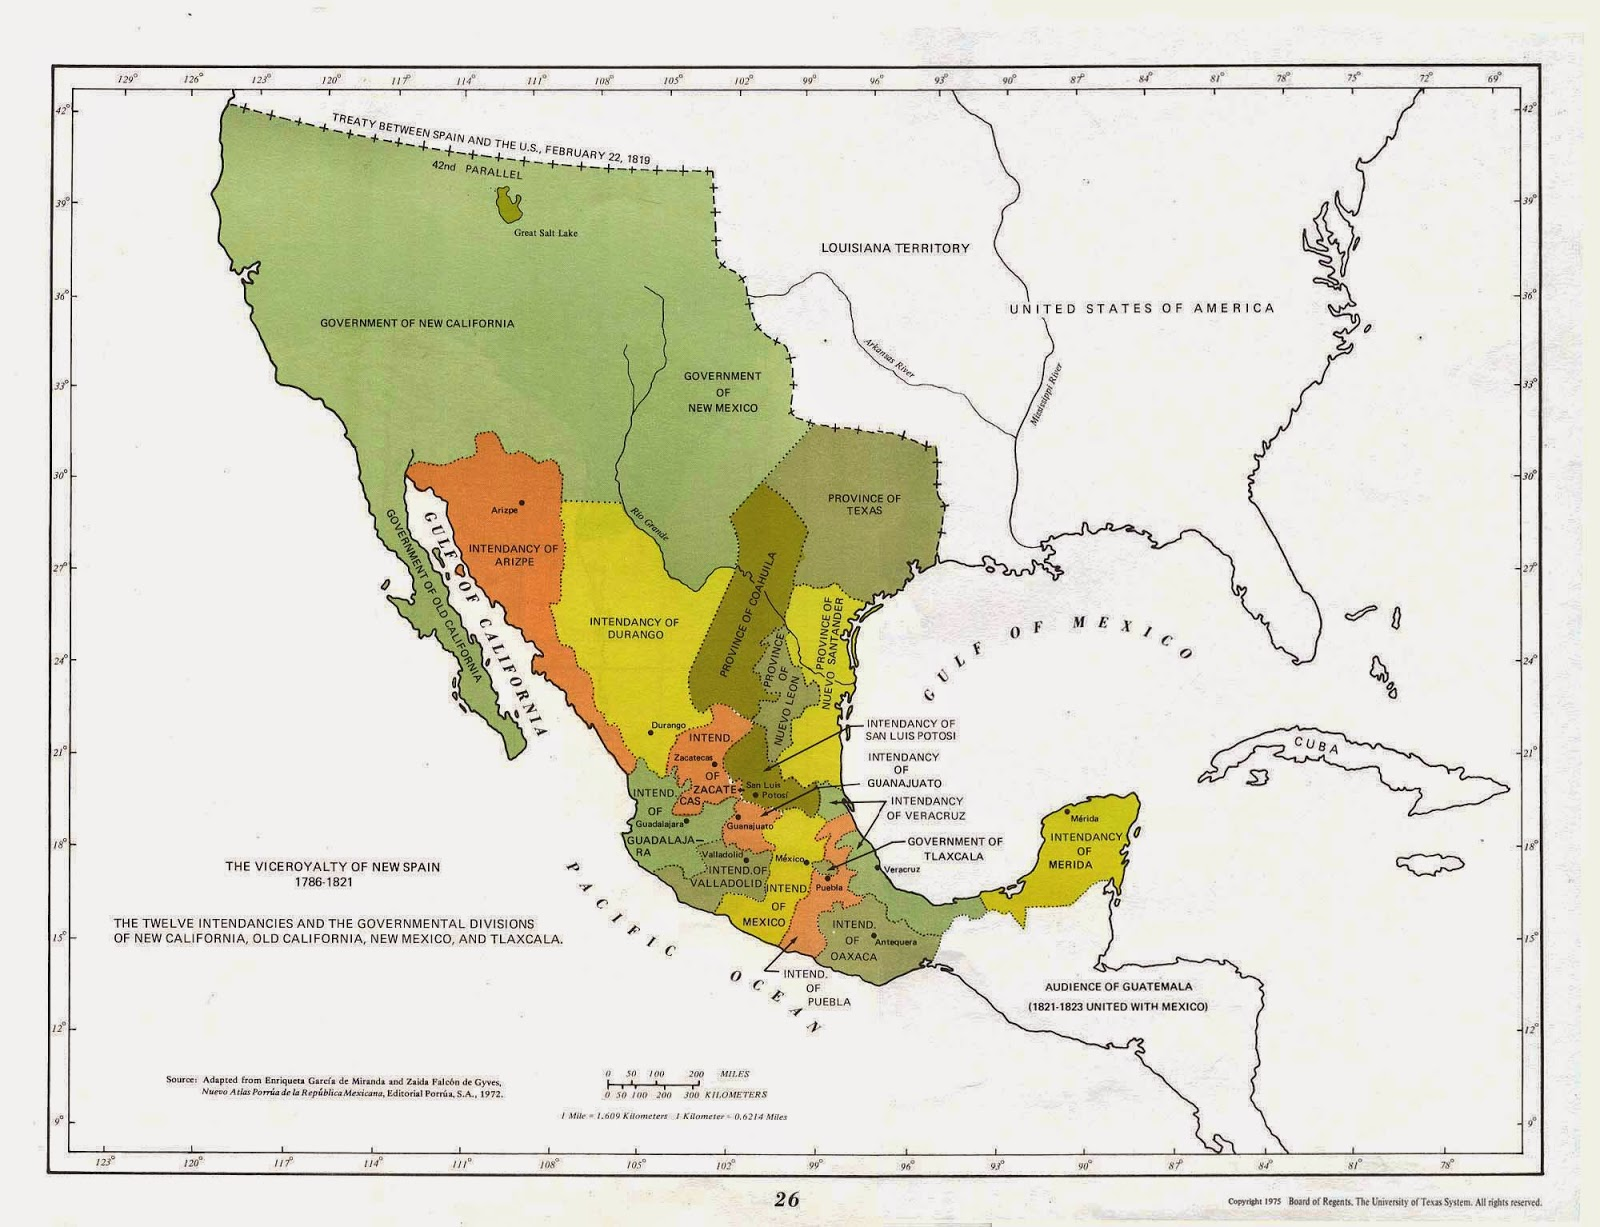 colonial mexico in the continental united states where was colonial mexico